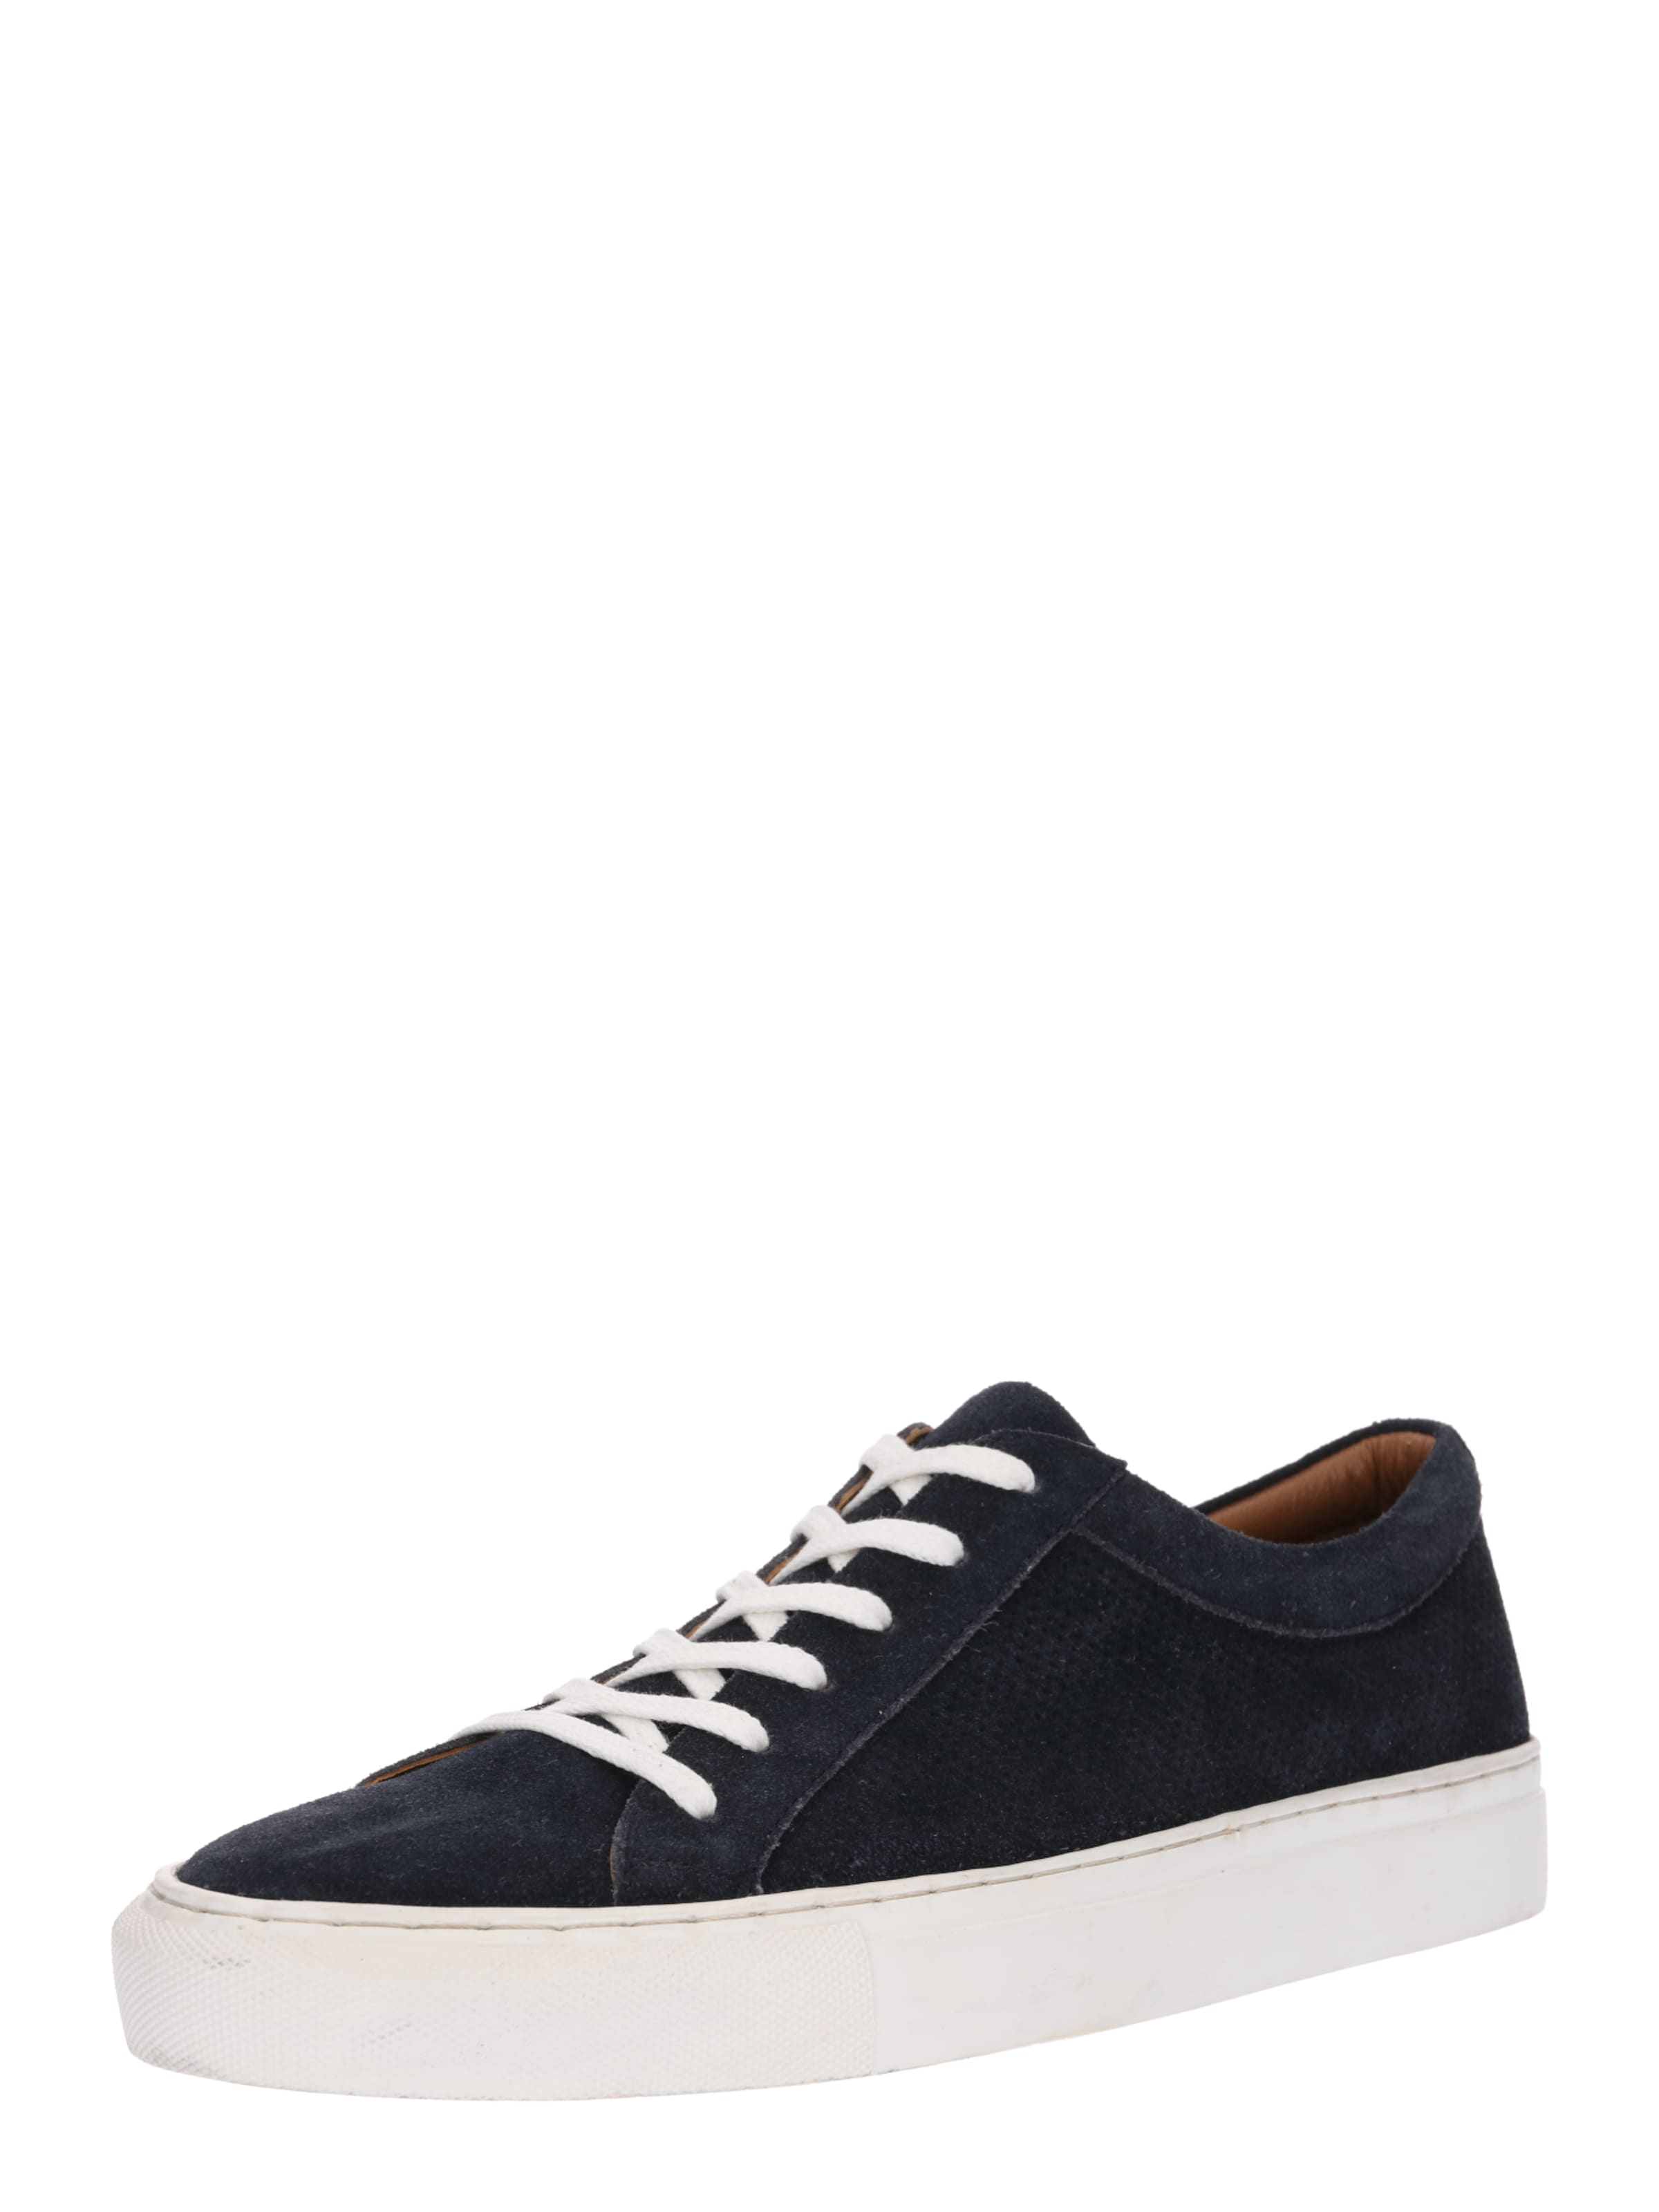 Sneaker In 'aiden' Navy About You CQtshrd